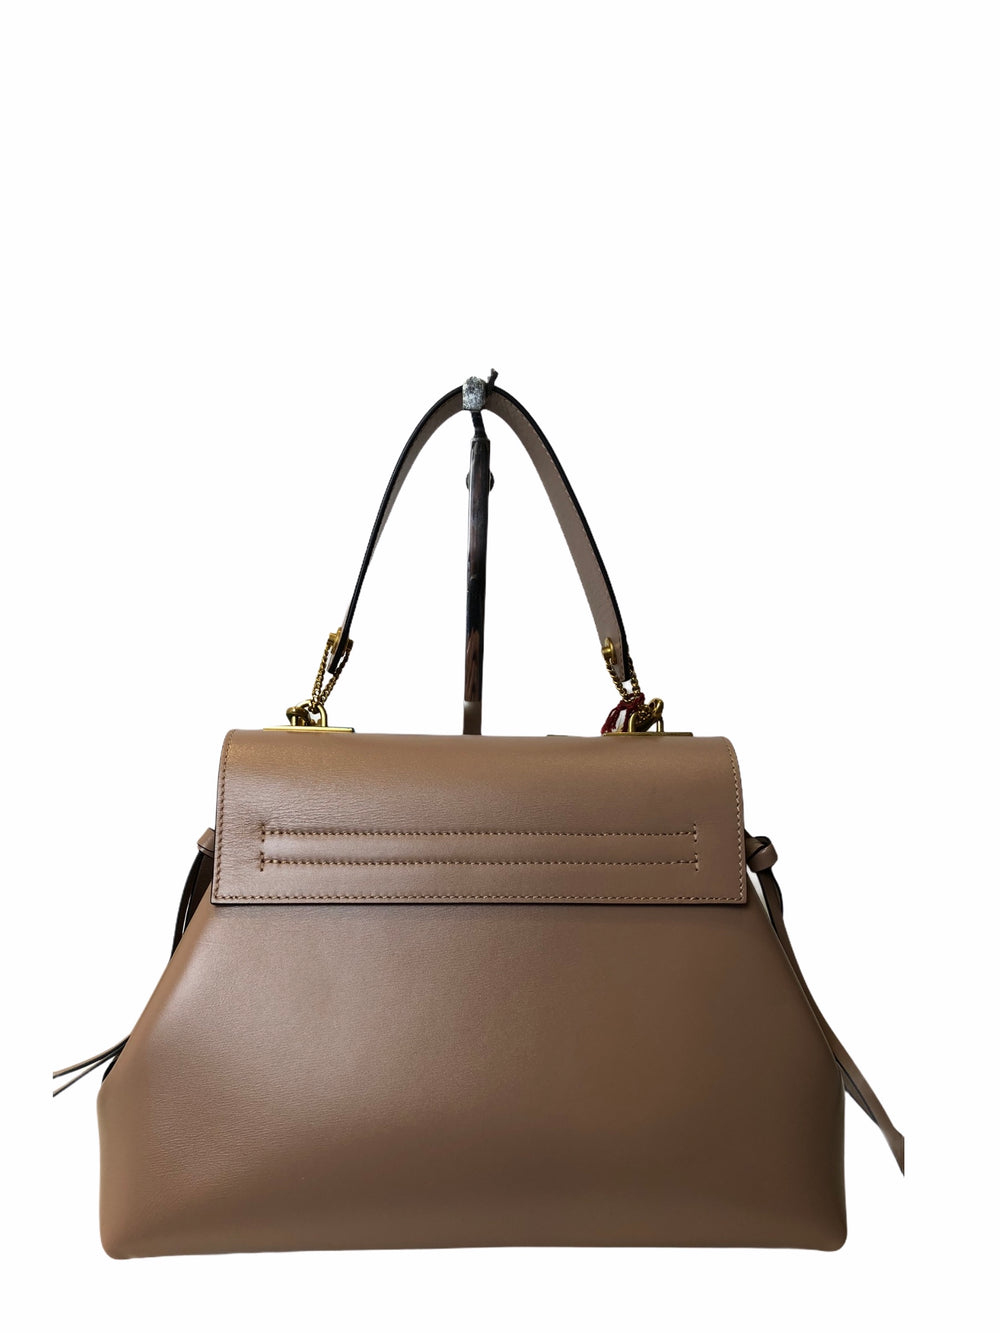 Valentino Tan Leather VRing Tote Handbag - As Seen on Instagram